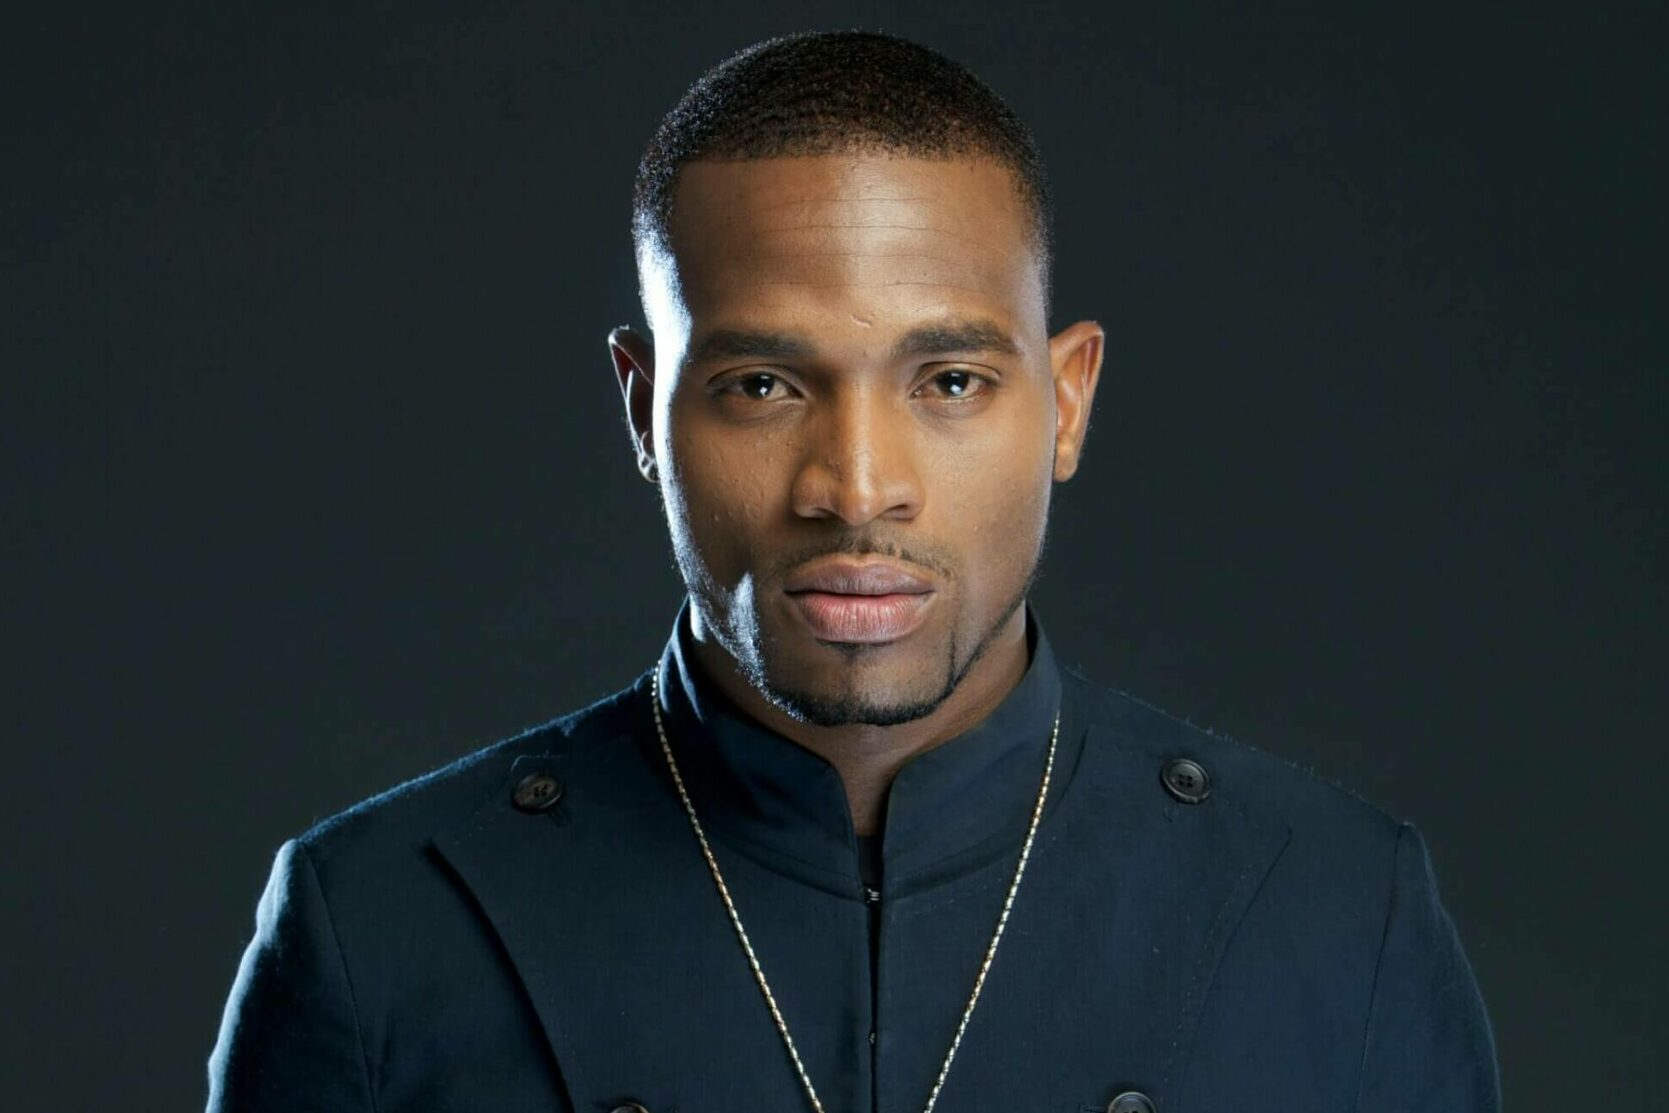 D'banj Biography: early life, education, music career, family, awards and facts